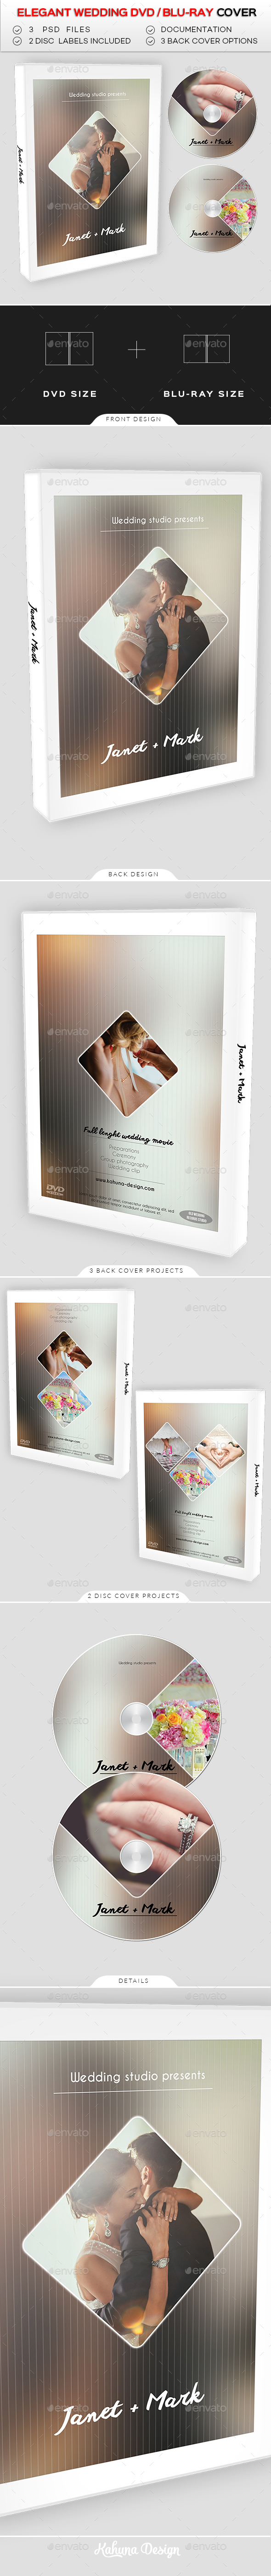 Wedding DVD / Blu Ray Cover 09 - CD & DVD Artwork Print Templates